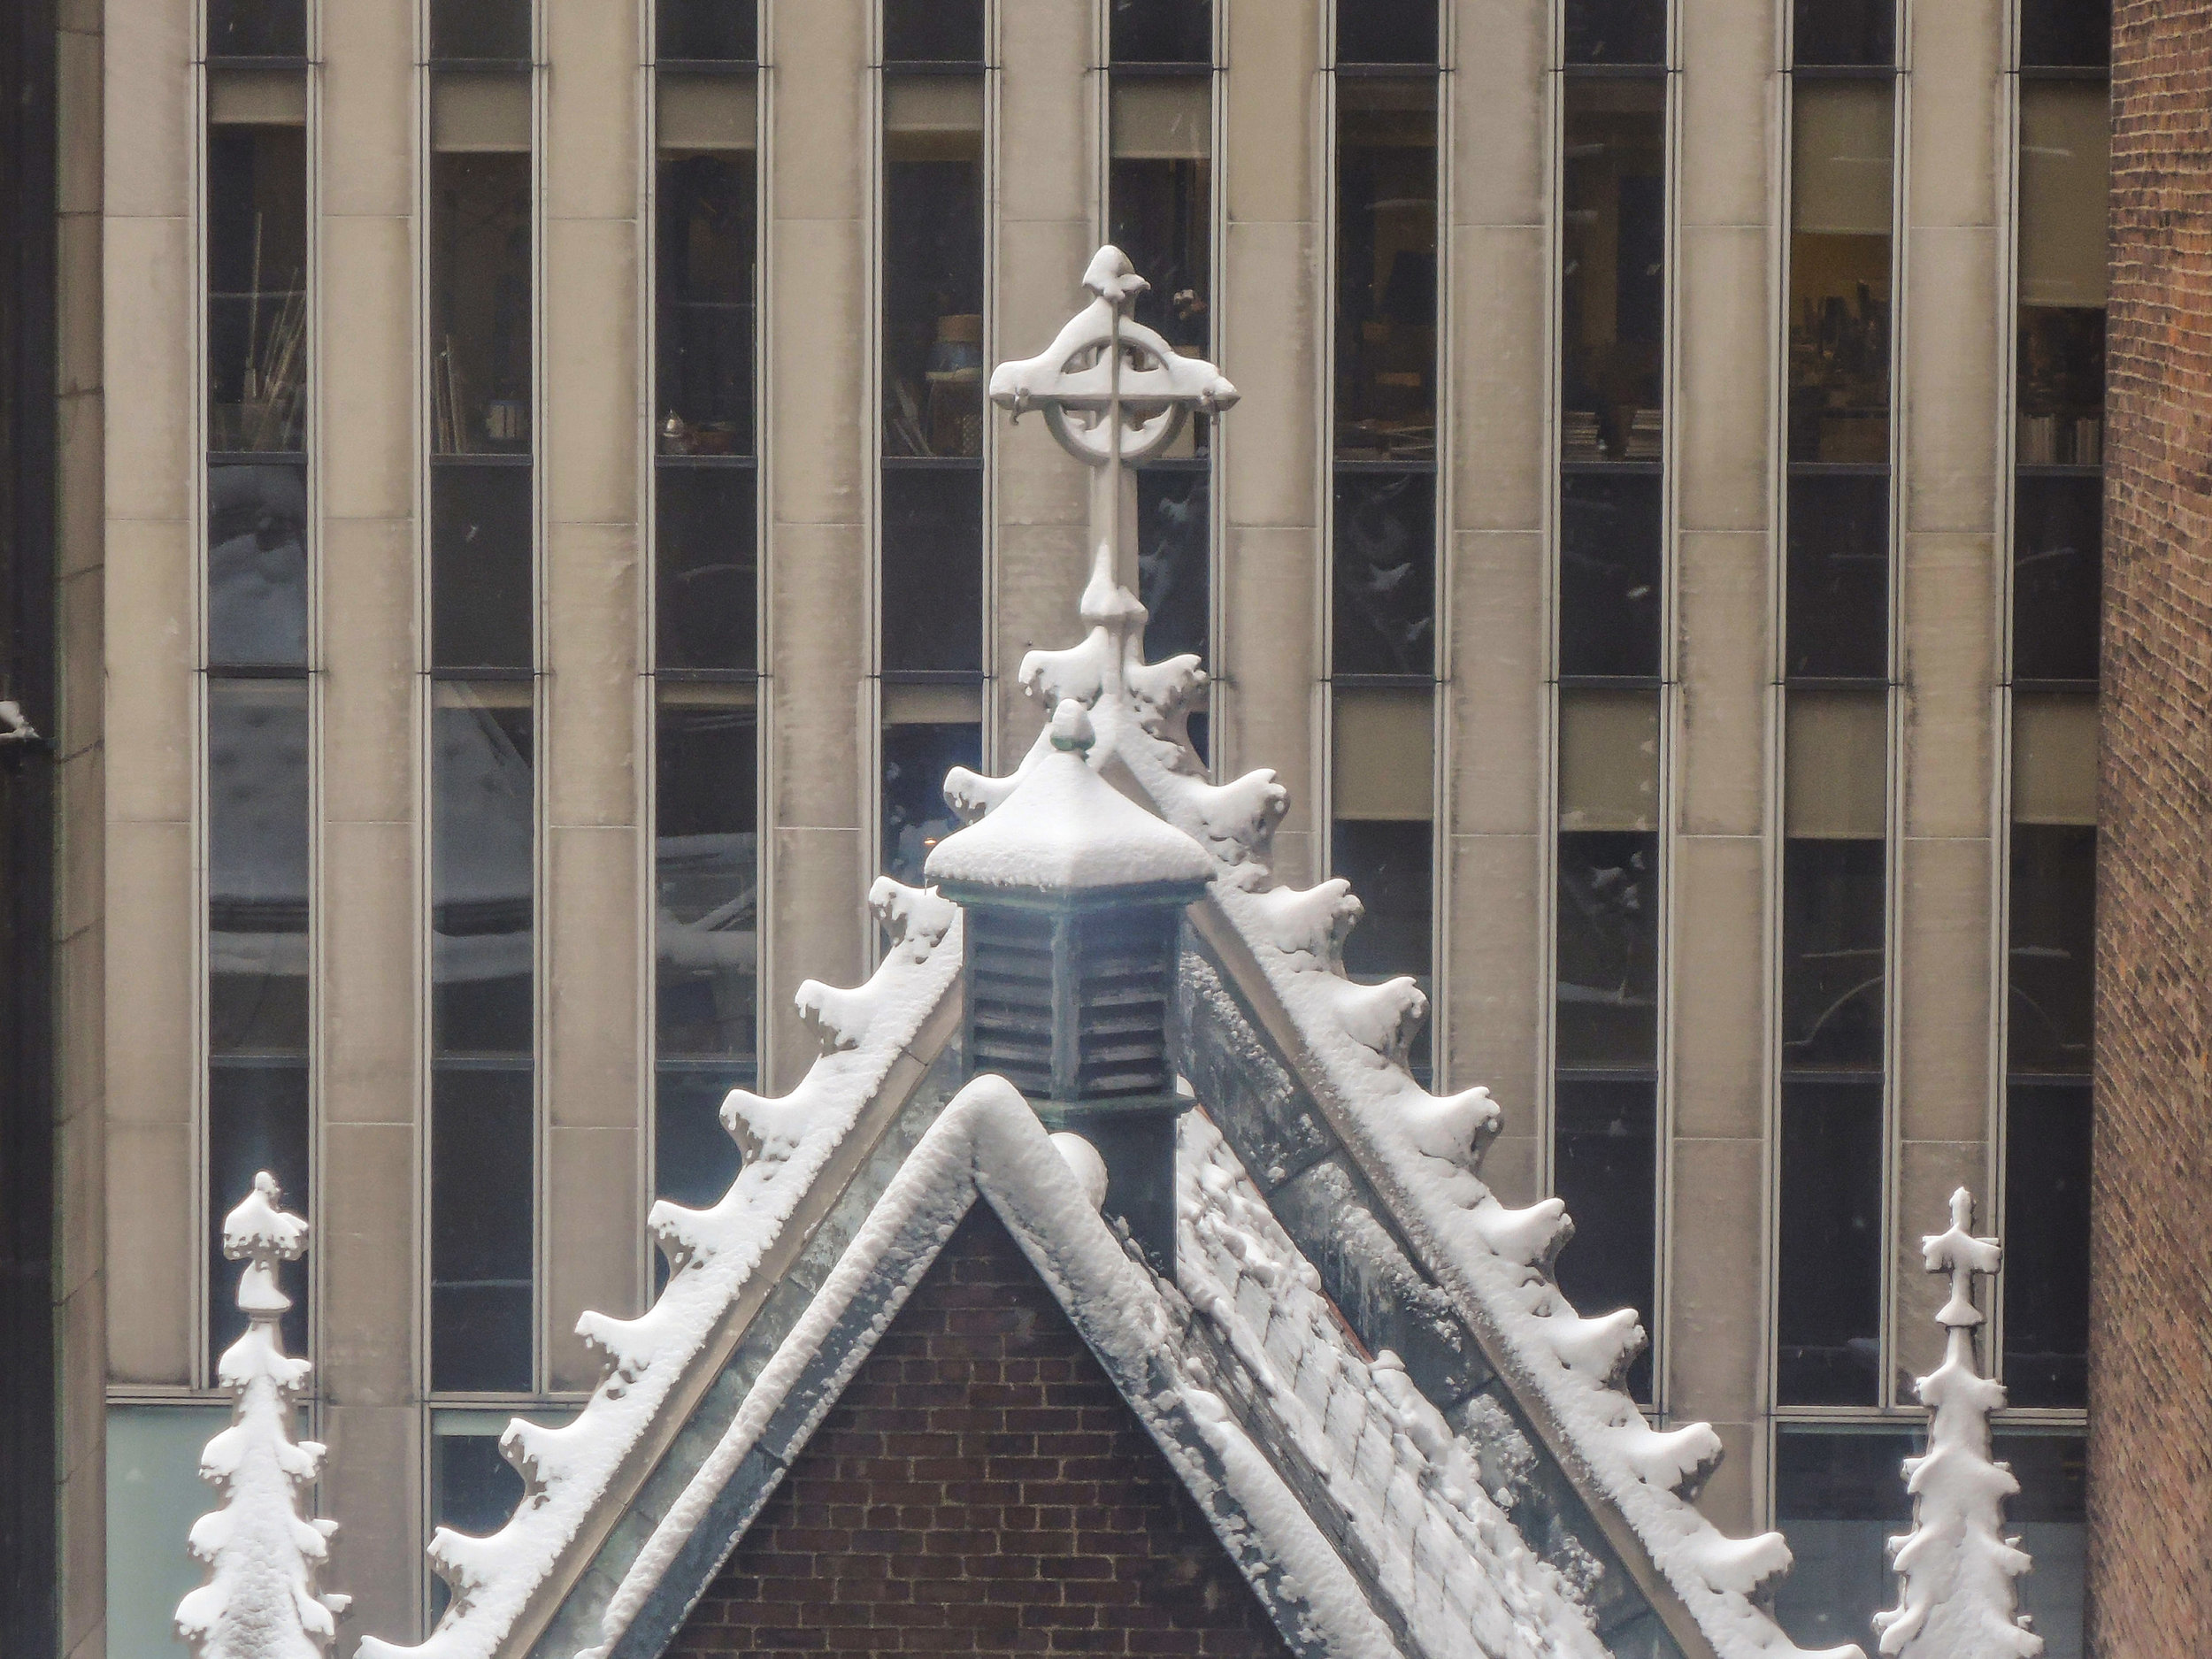 Snow on the Lady Chapel roof